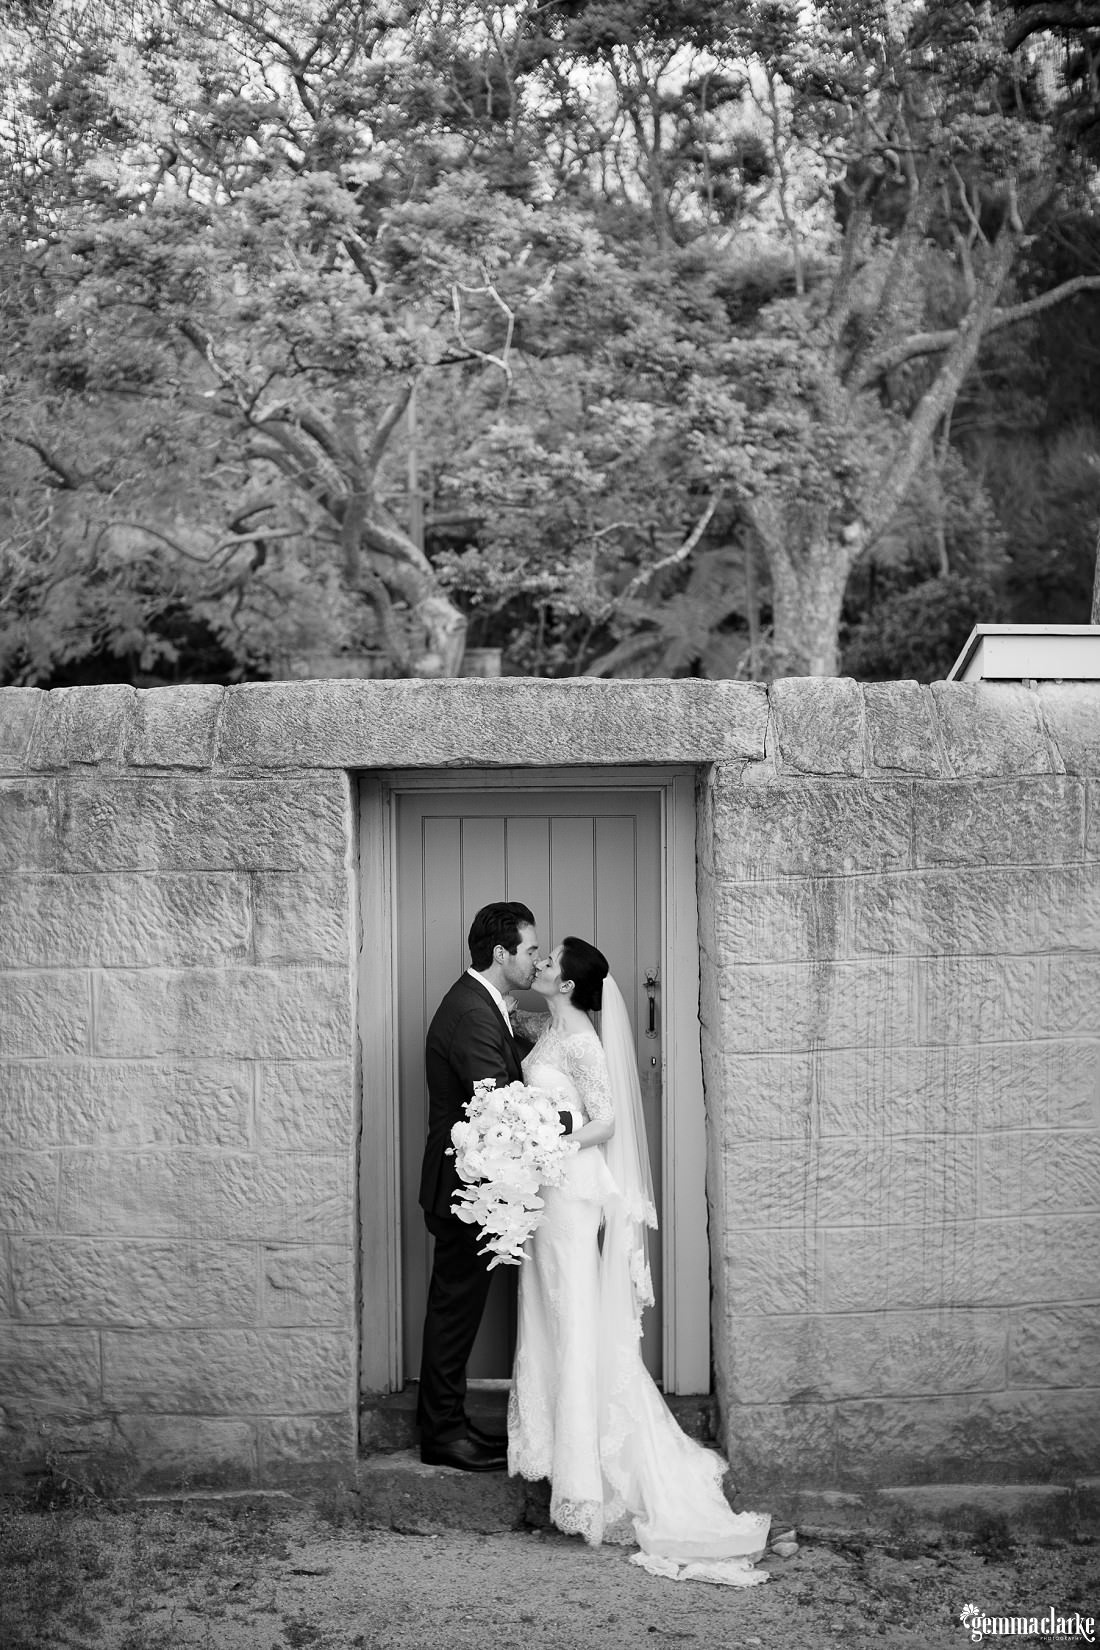 A bride and groom kiss while standing on a doorstep of a wooden doorway in a stone wall - Vaucluse House Wedding